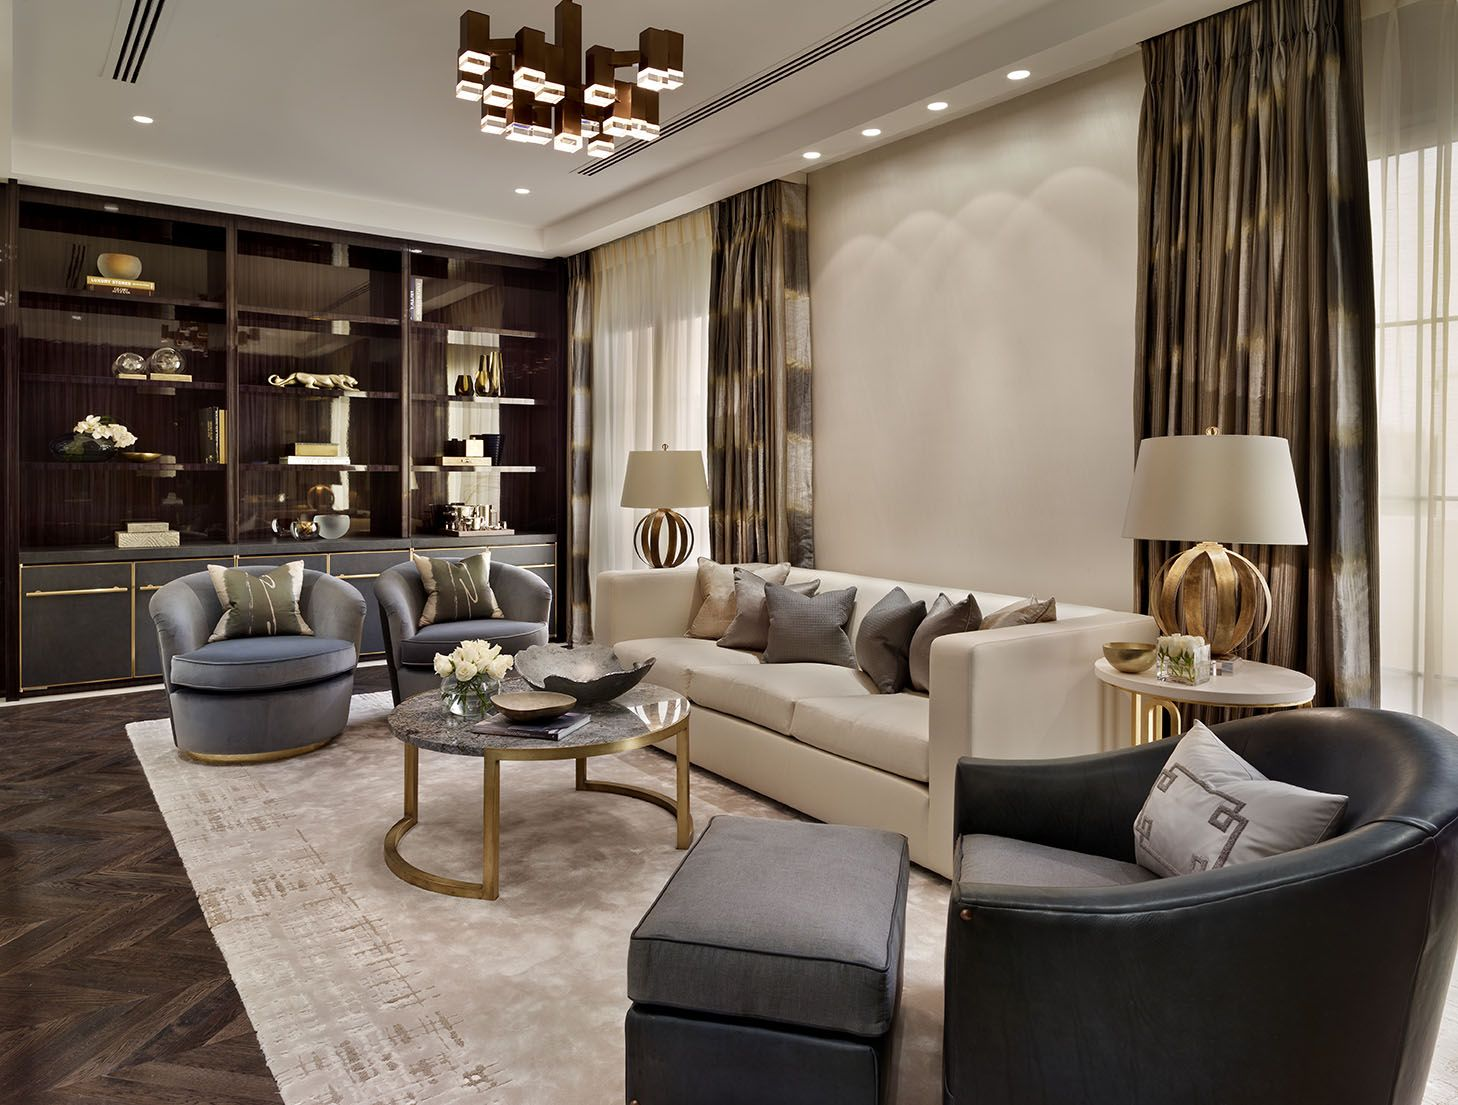 Qatar Fabulous Bookshelf Design Living Room Designs